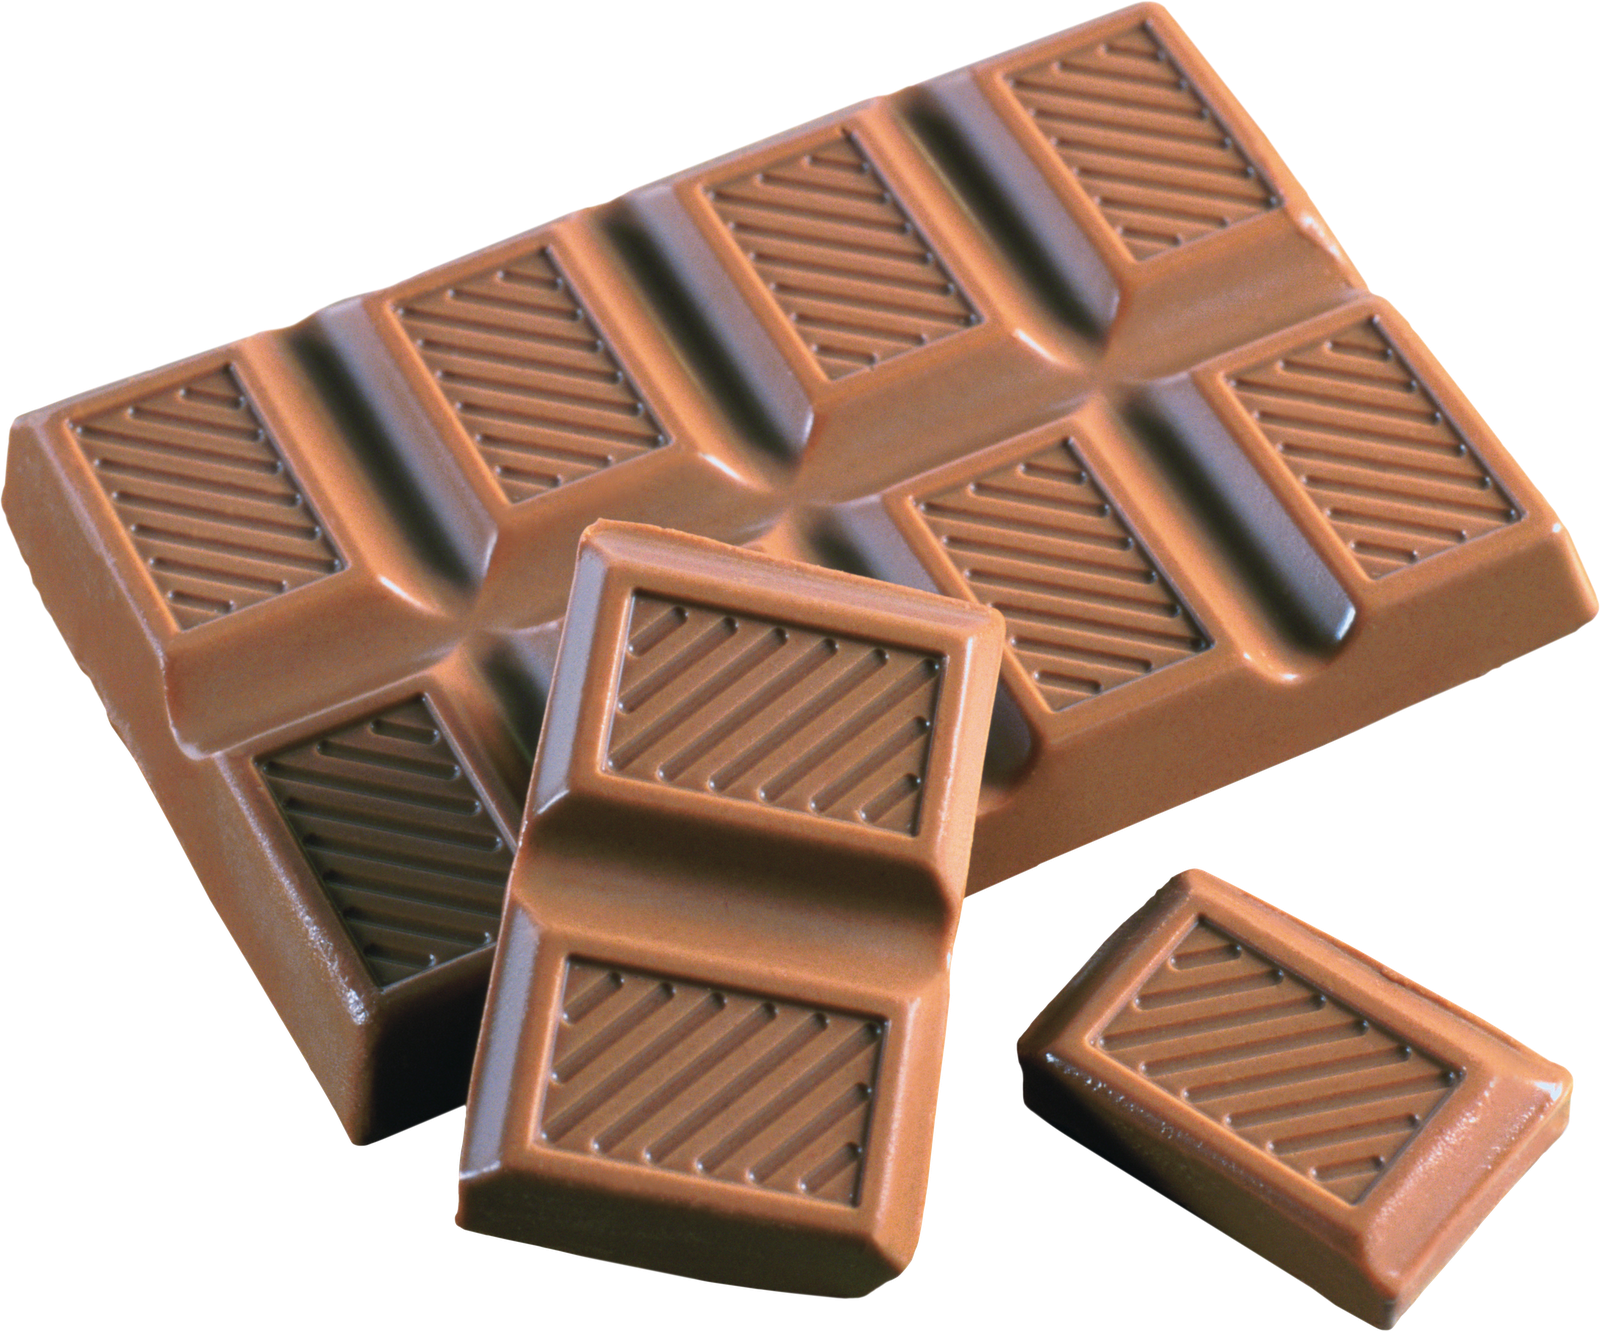 Chocolate bar PNG image - Chocolate Bar HD PNG